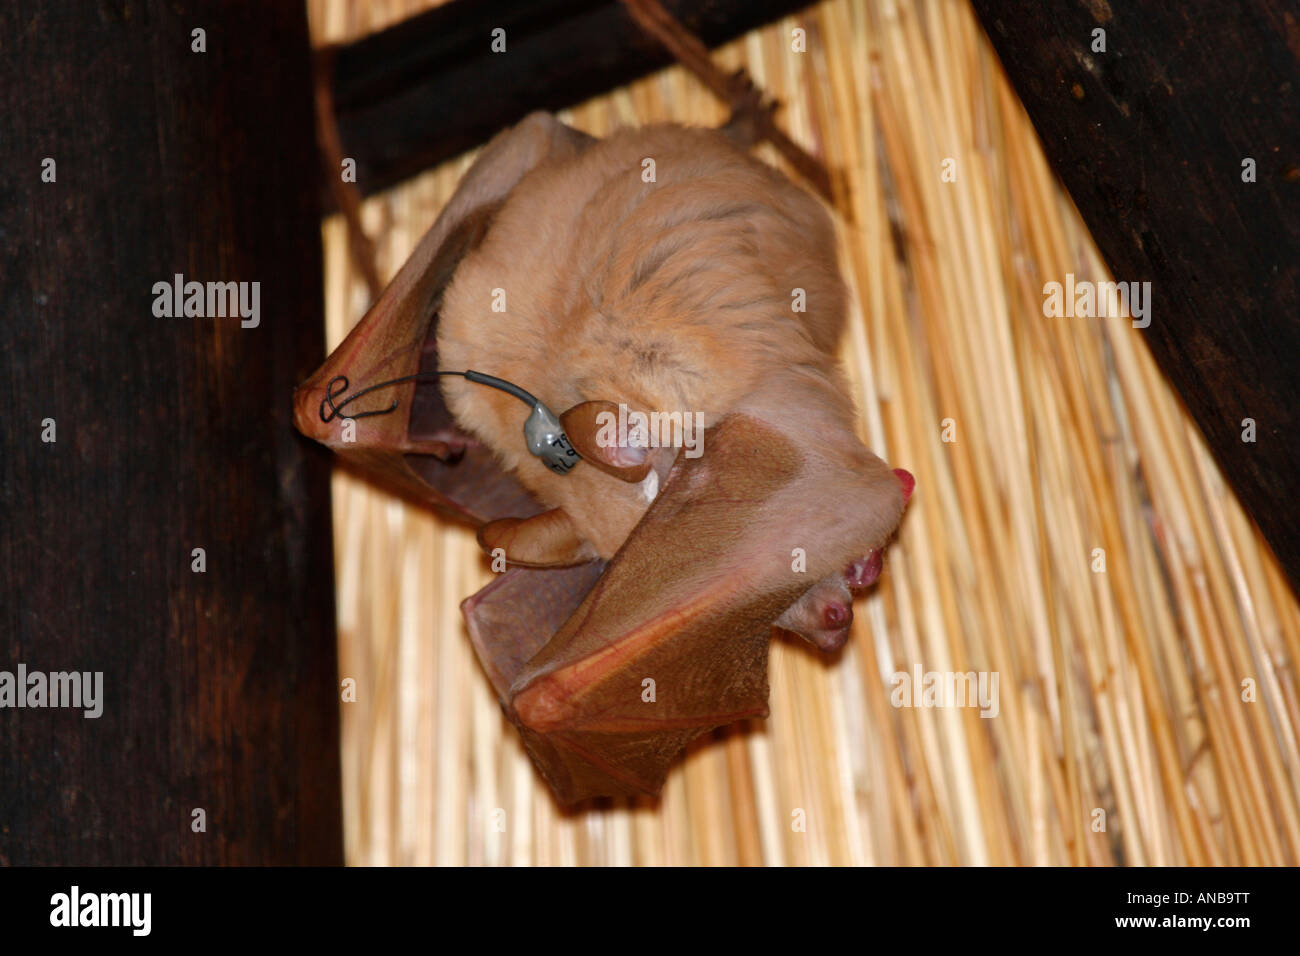 Tracking Transmitter Stock Photos Epauletted Fruit Bats Fitted With A Micro Image